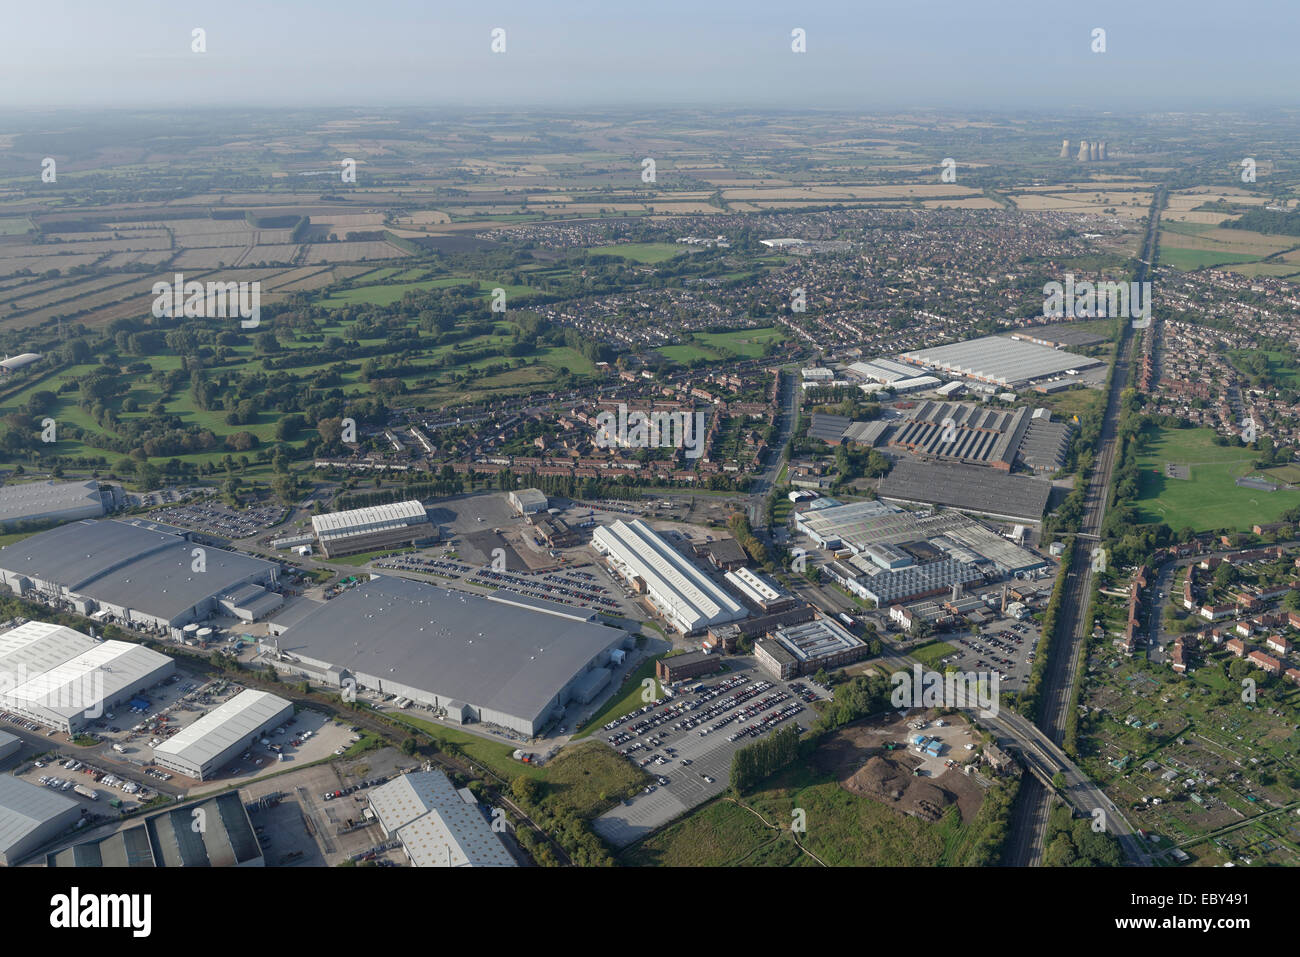 An aerial view of the Sinfin area of Derby showing a retail park, housing and a Rolls Royce factory - Stock Image